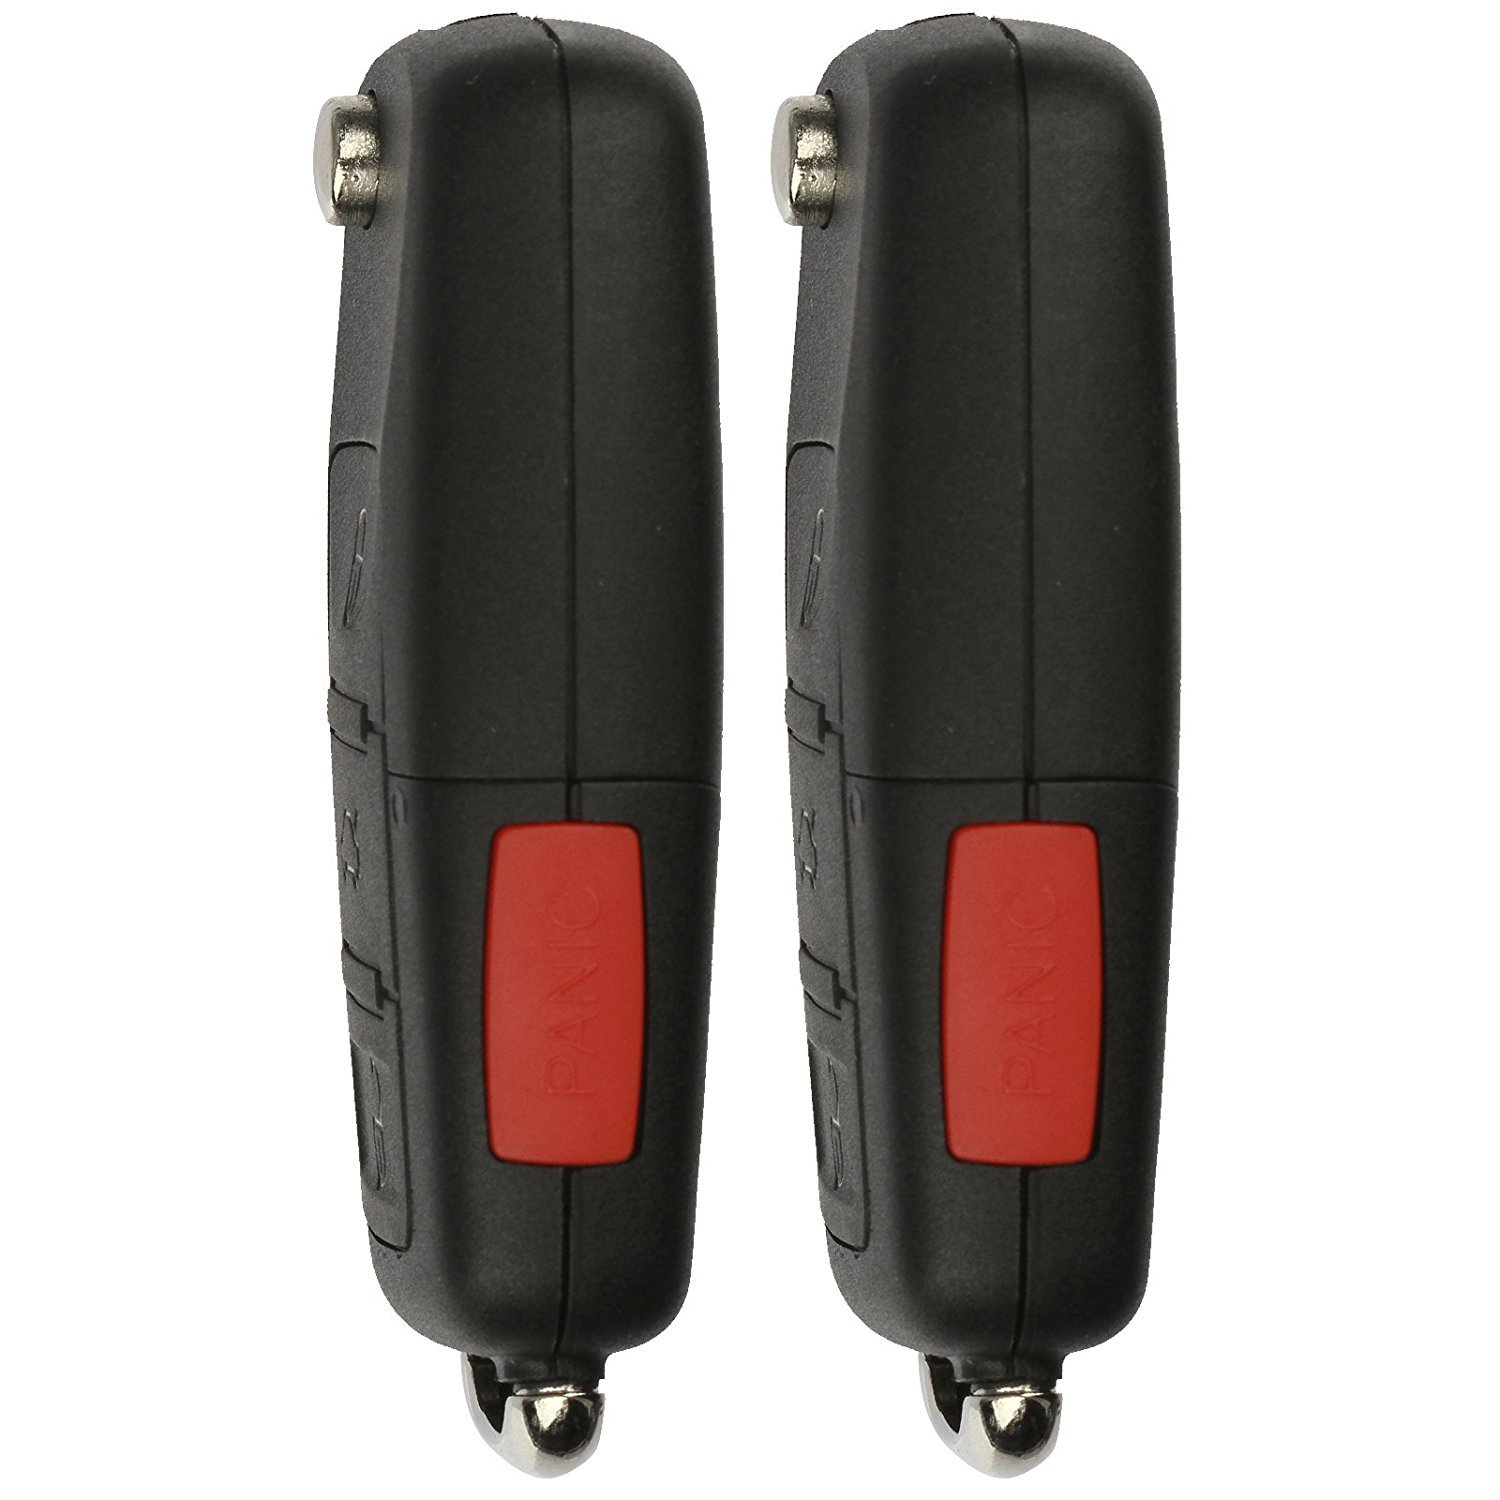 Pack of 2 KeylessOption Keyless Entry Remote Control Car Uncut Flip Key Fob Replacement for VW Touareg KR55WK45032